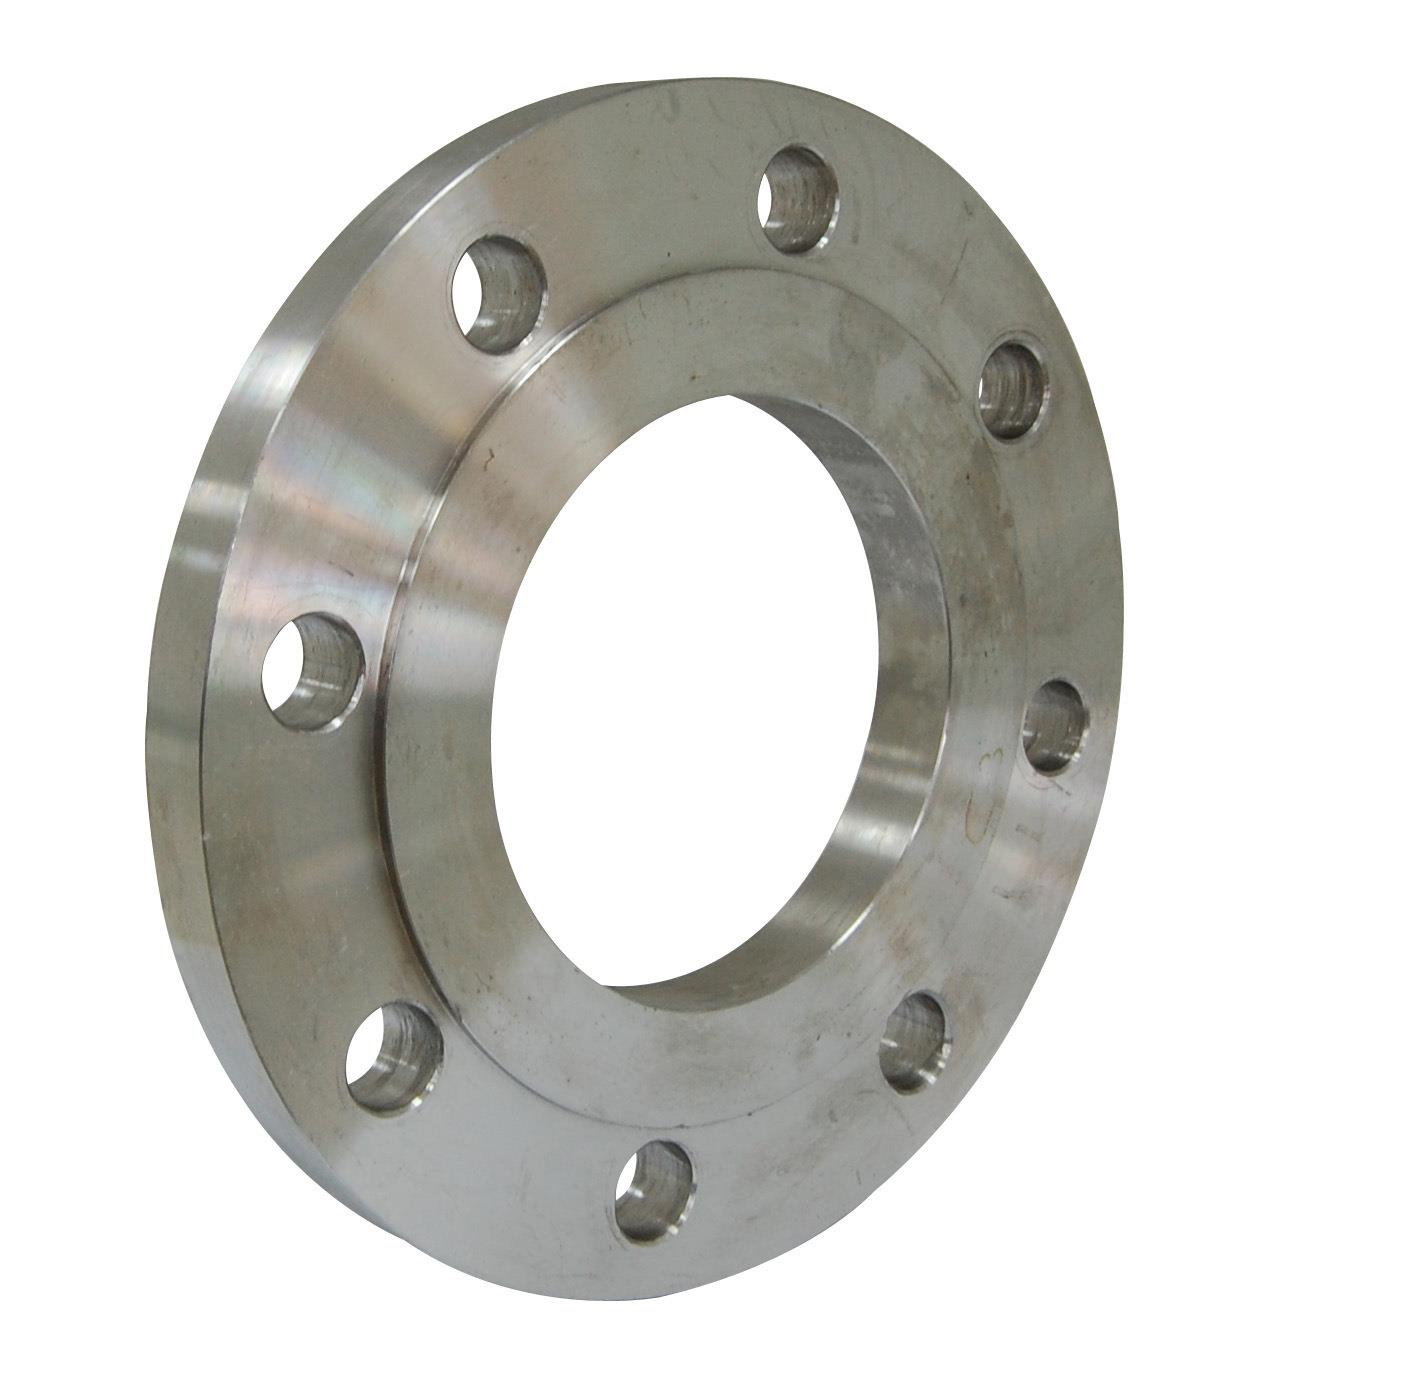 Stainless steel flange1 (2)